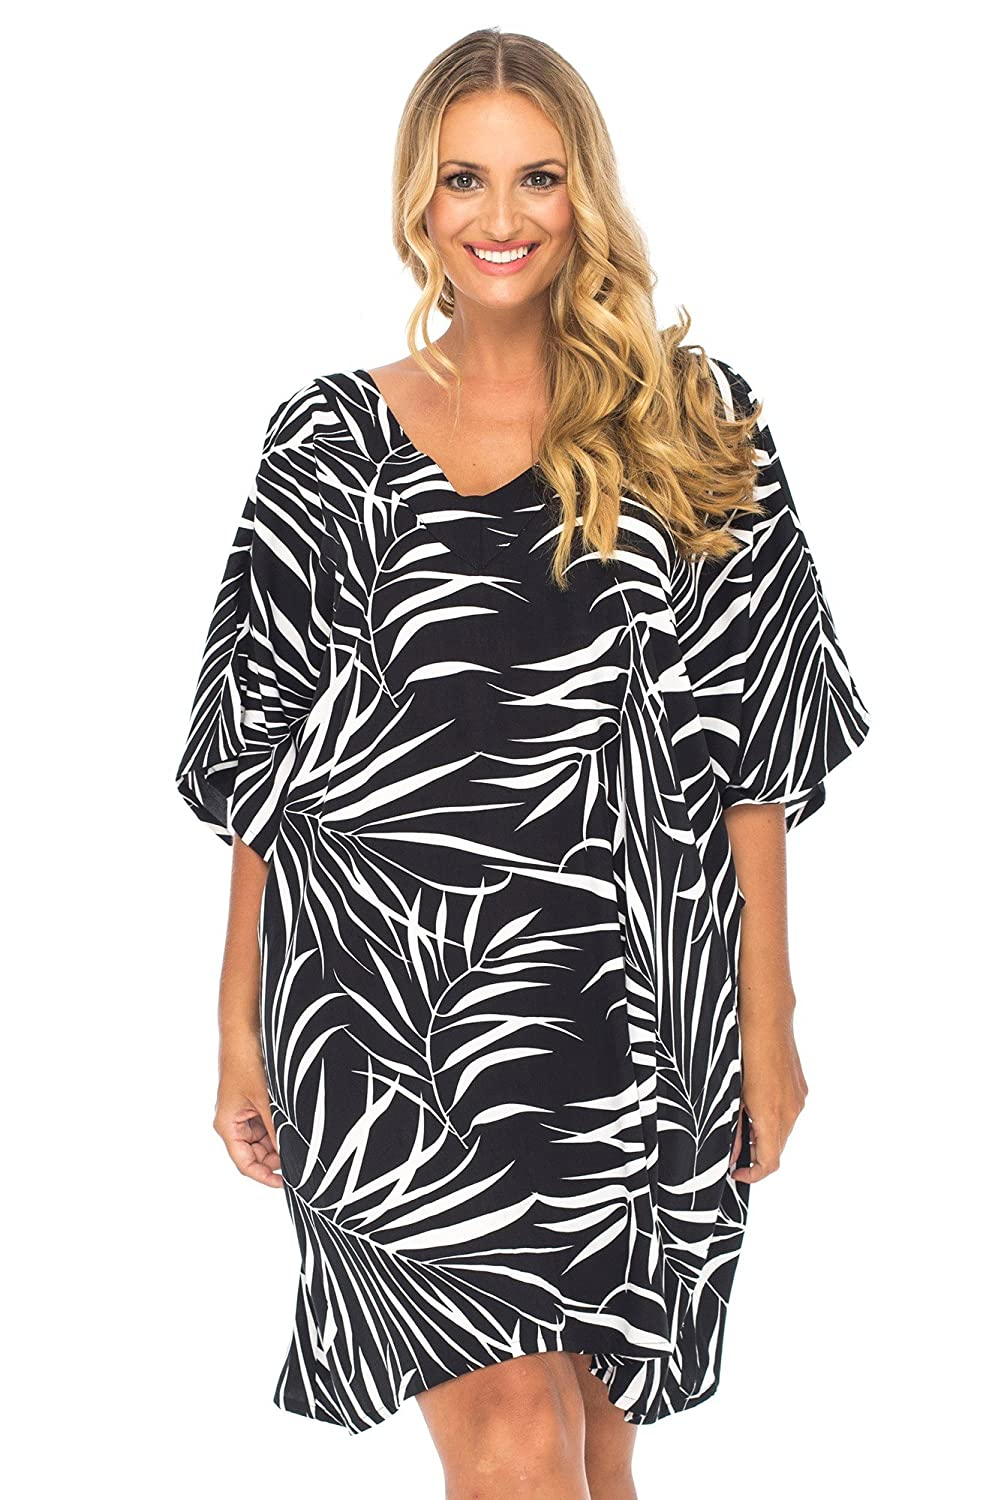 0b70d2ef85c2 Gorgeous Back From Bali plus size sundress poncho in a striking black and  white palm frond print adds tropical allure at the beach or as a tunic dress